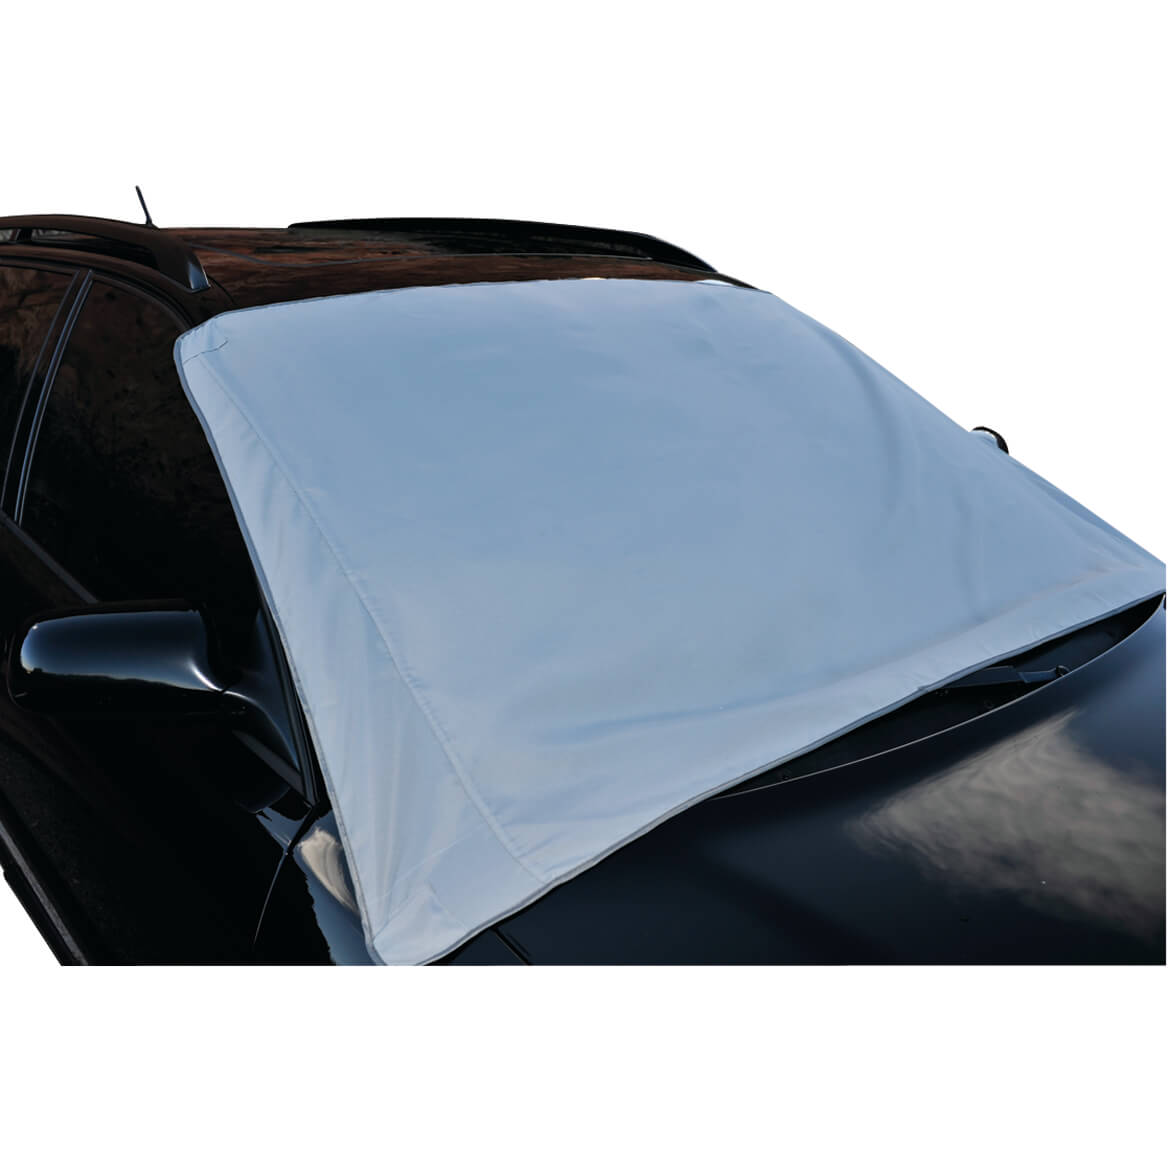 Magnetic Windshield Cover-328991